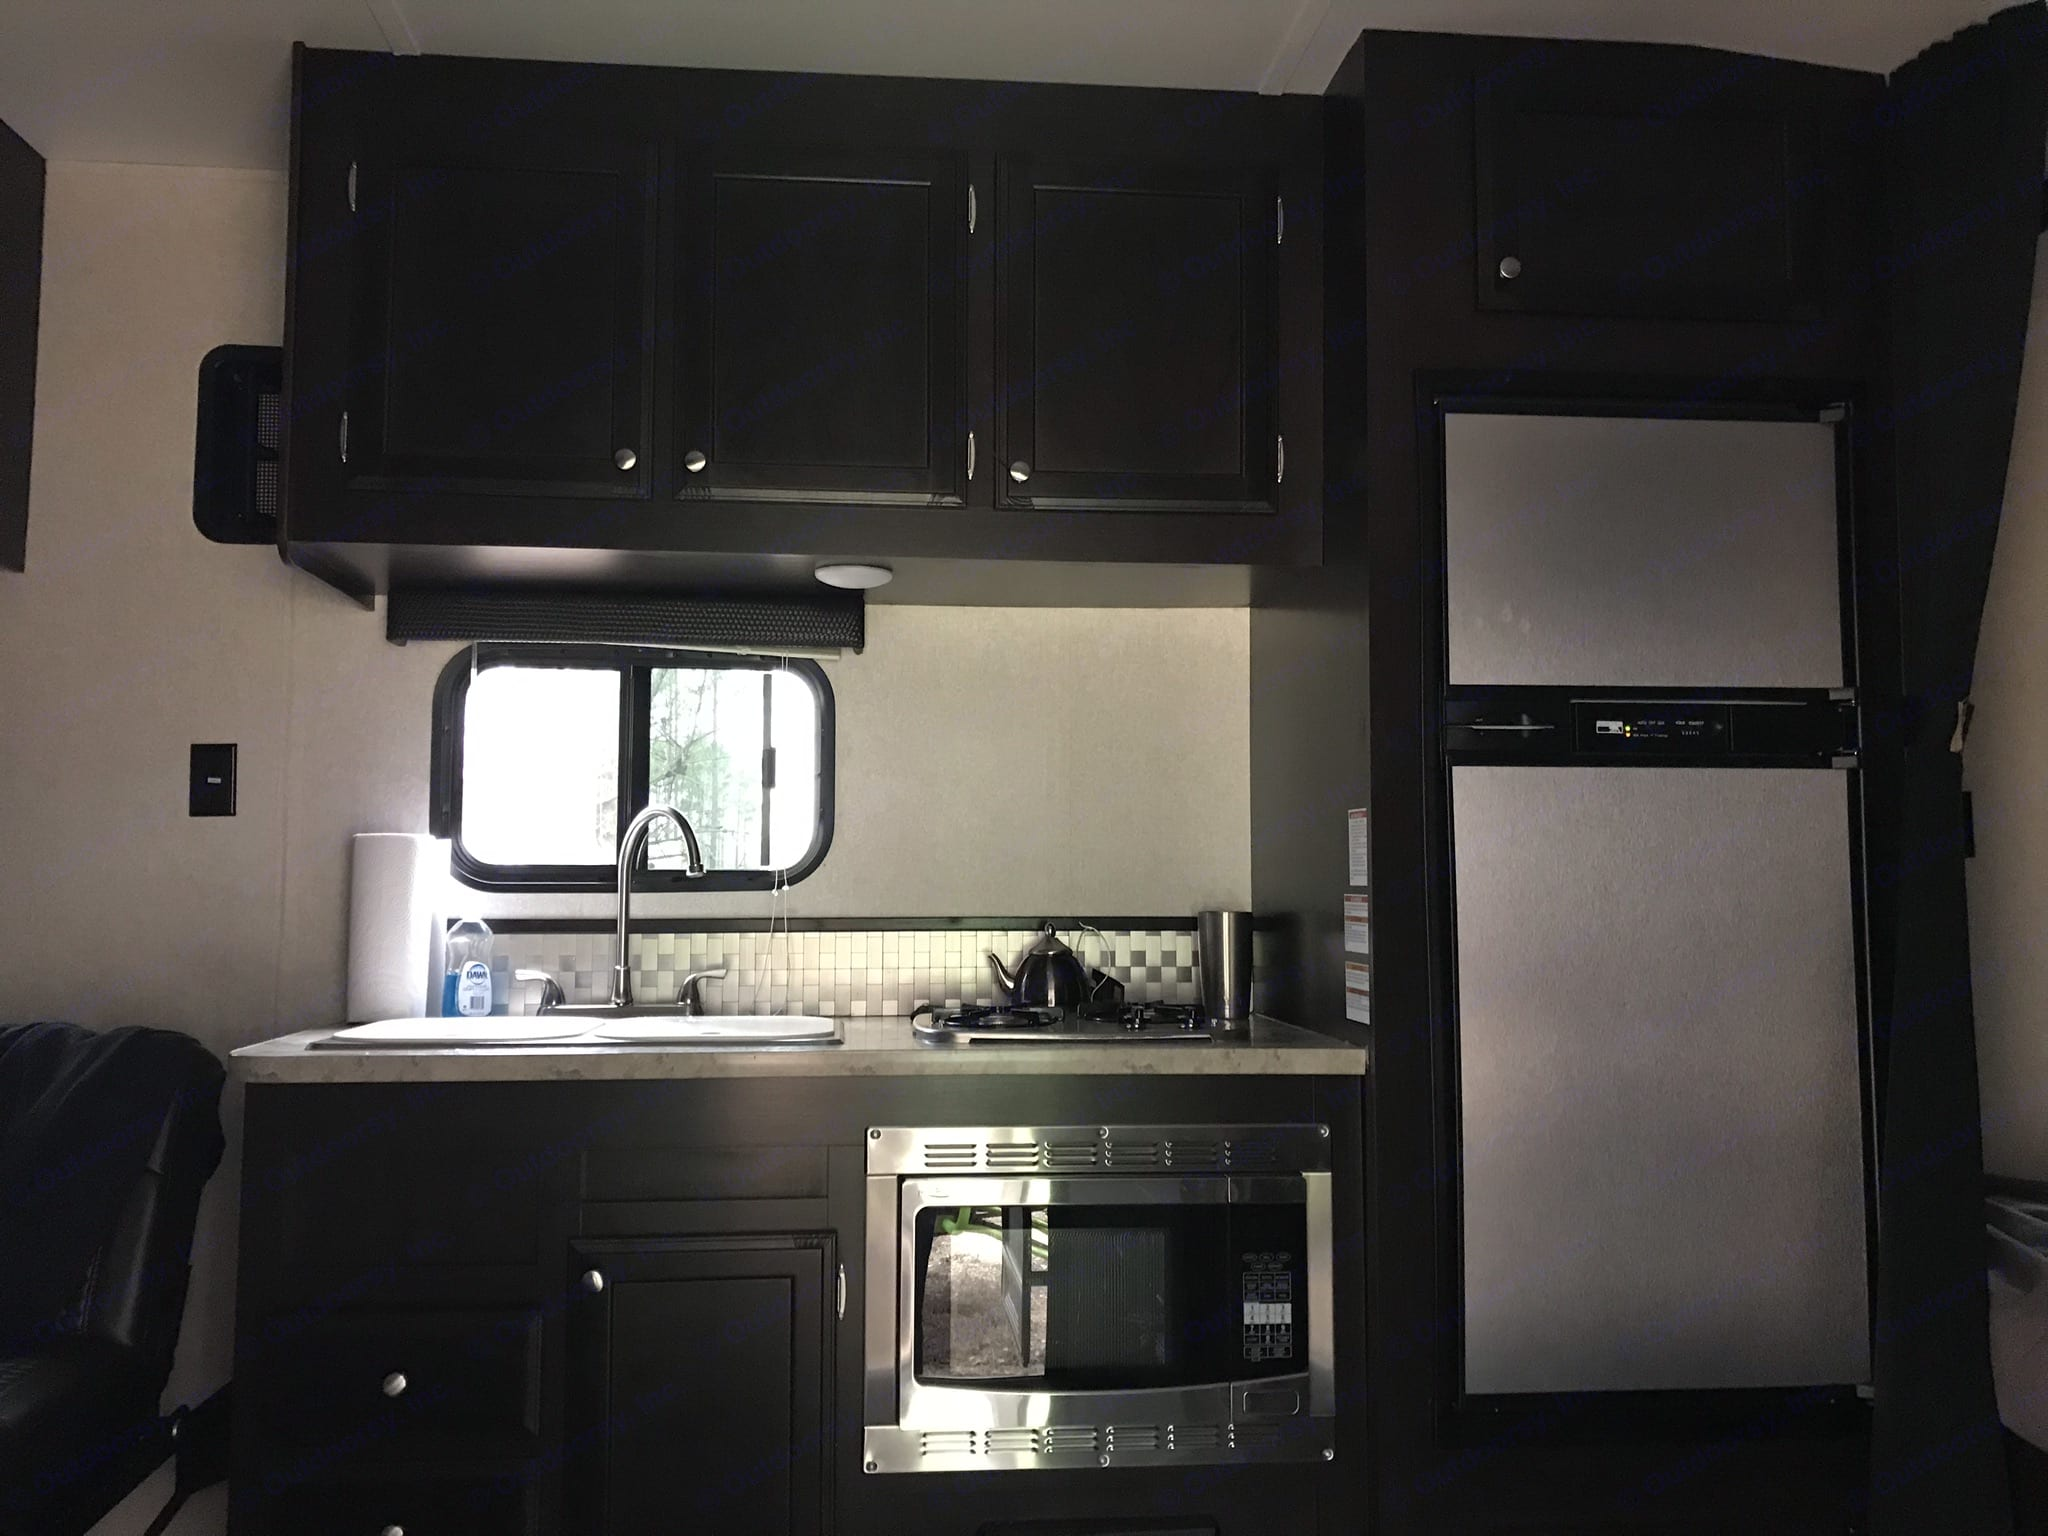 Full Kitchen with Refrigerator, Stove, Microwave/Convention Oven and Double Sink, large Pantry in Corner with plenty of storage . Jayco Octane 2017